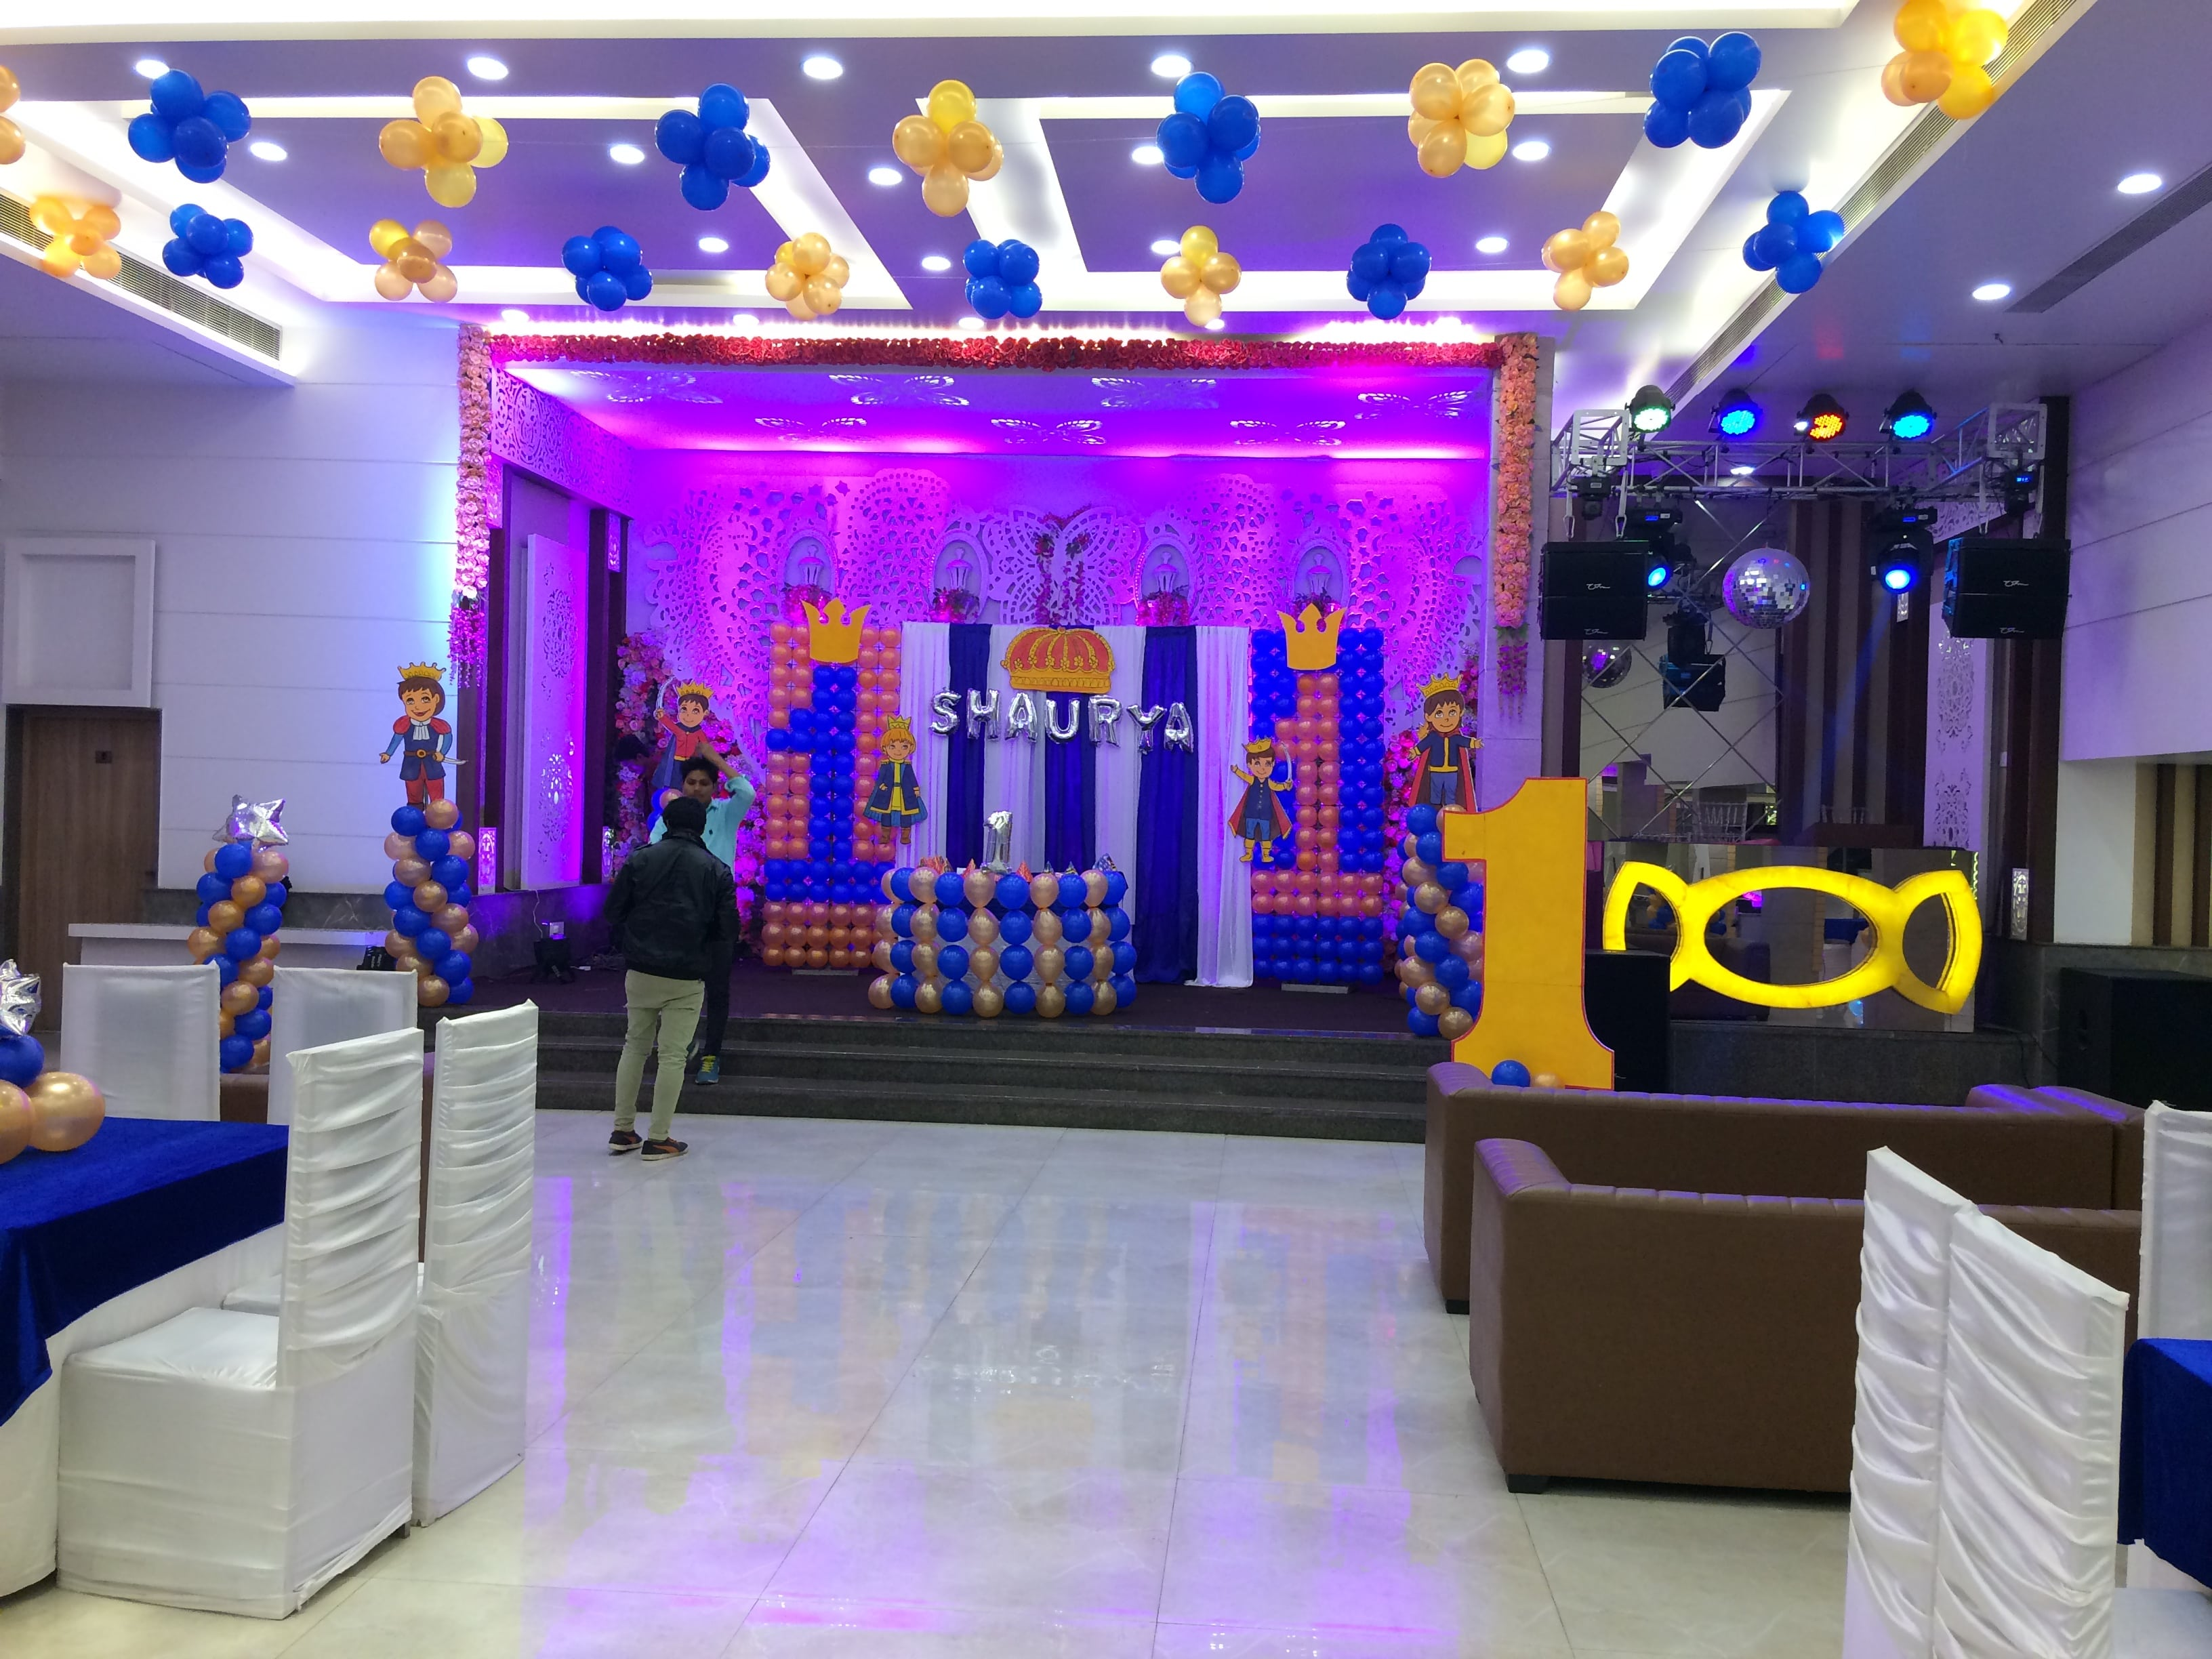 boy prince theme party organizer in noida, boy prince theme party organizer in dehli, boy prince theme party organizer delhi noida ncr gurgaon, boy theme party planner in noida delhi ncr gurgaon